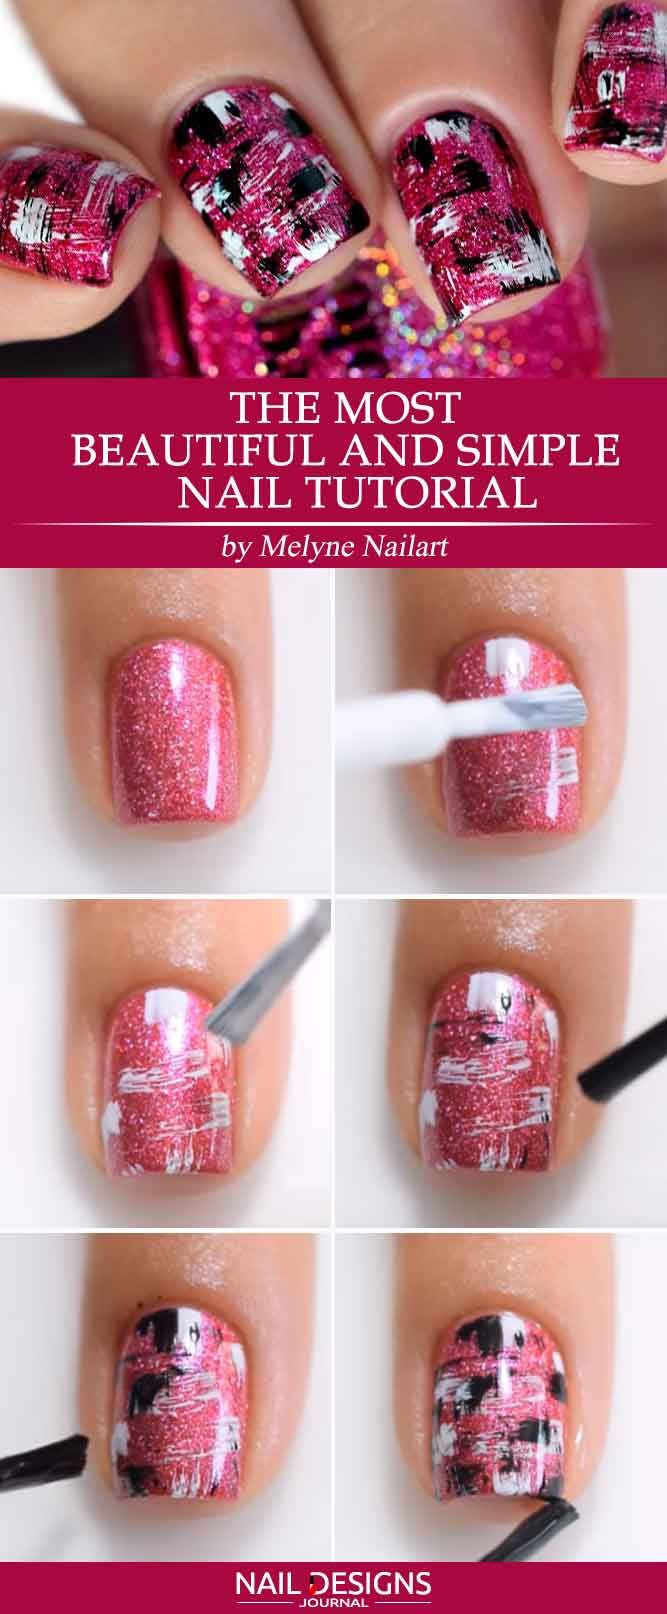 One of The Most Beautiful and Simple Nail Tutorials